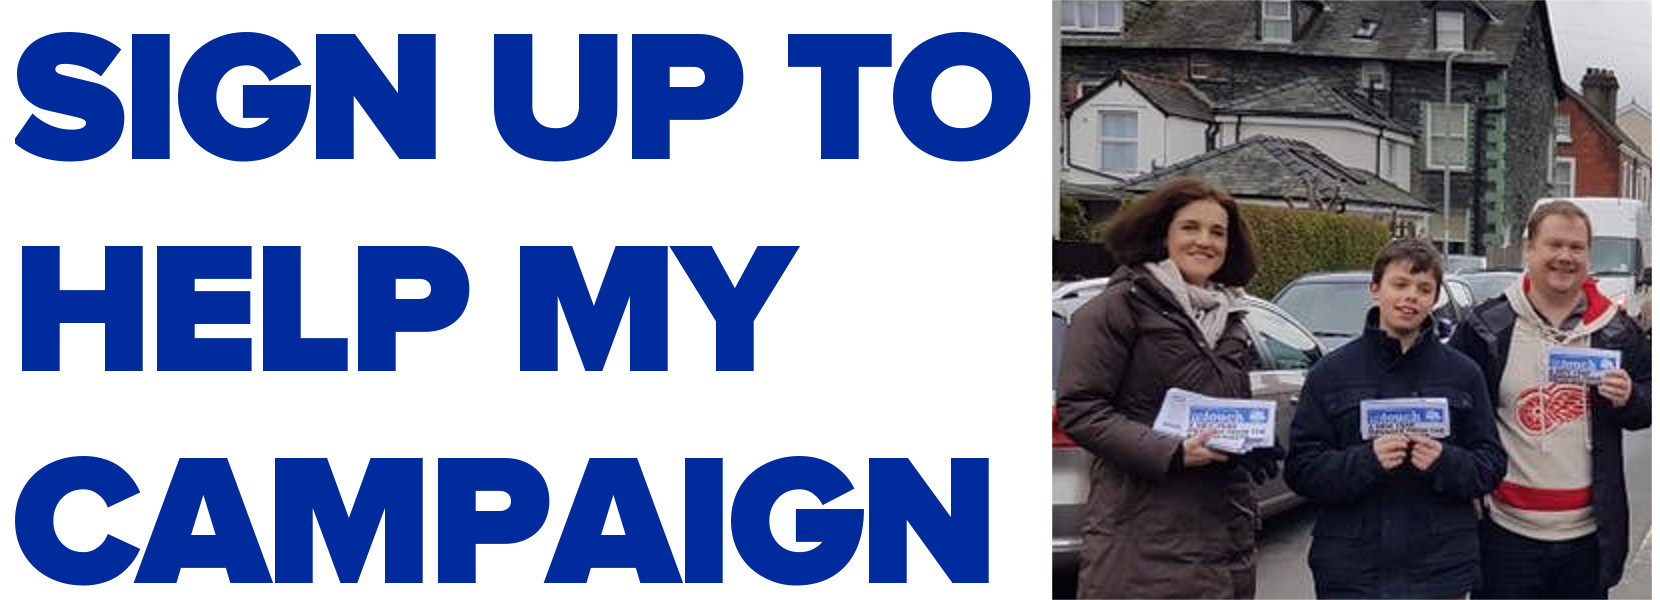 Sign up to help my campaign